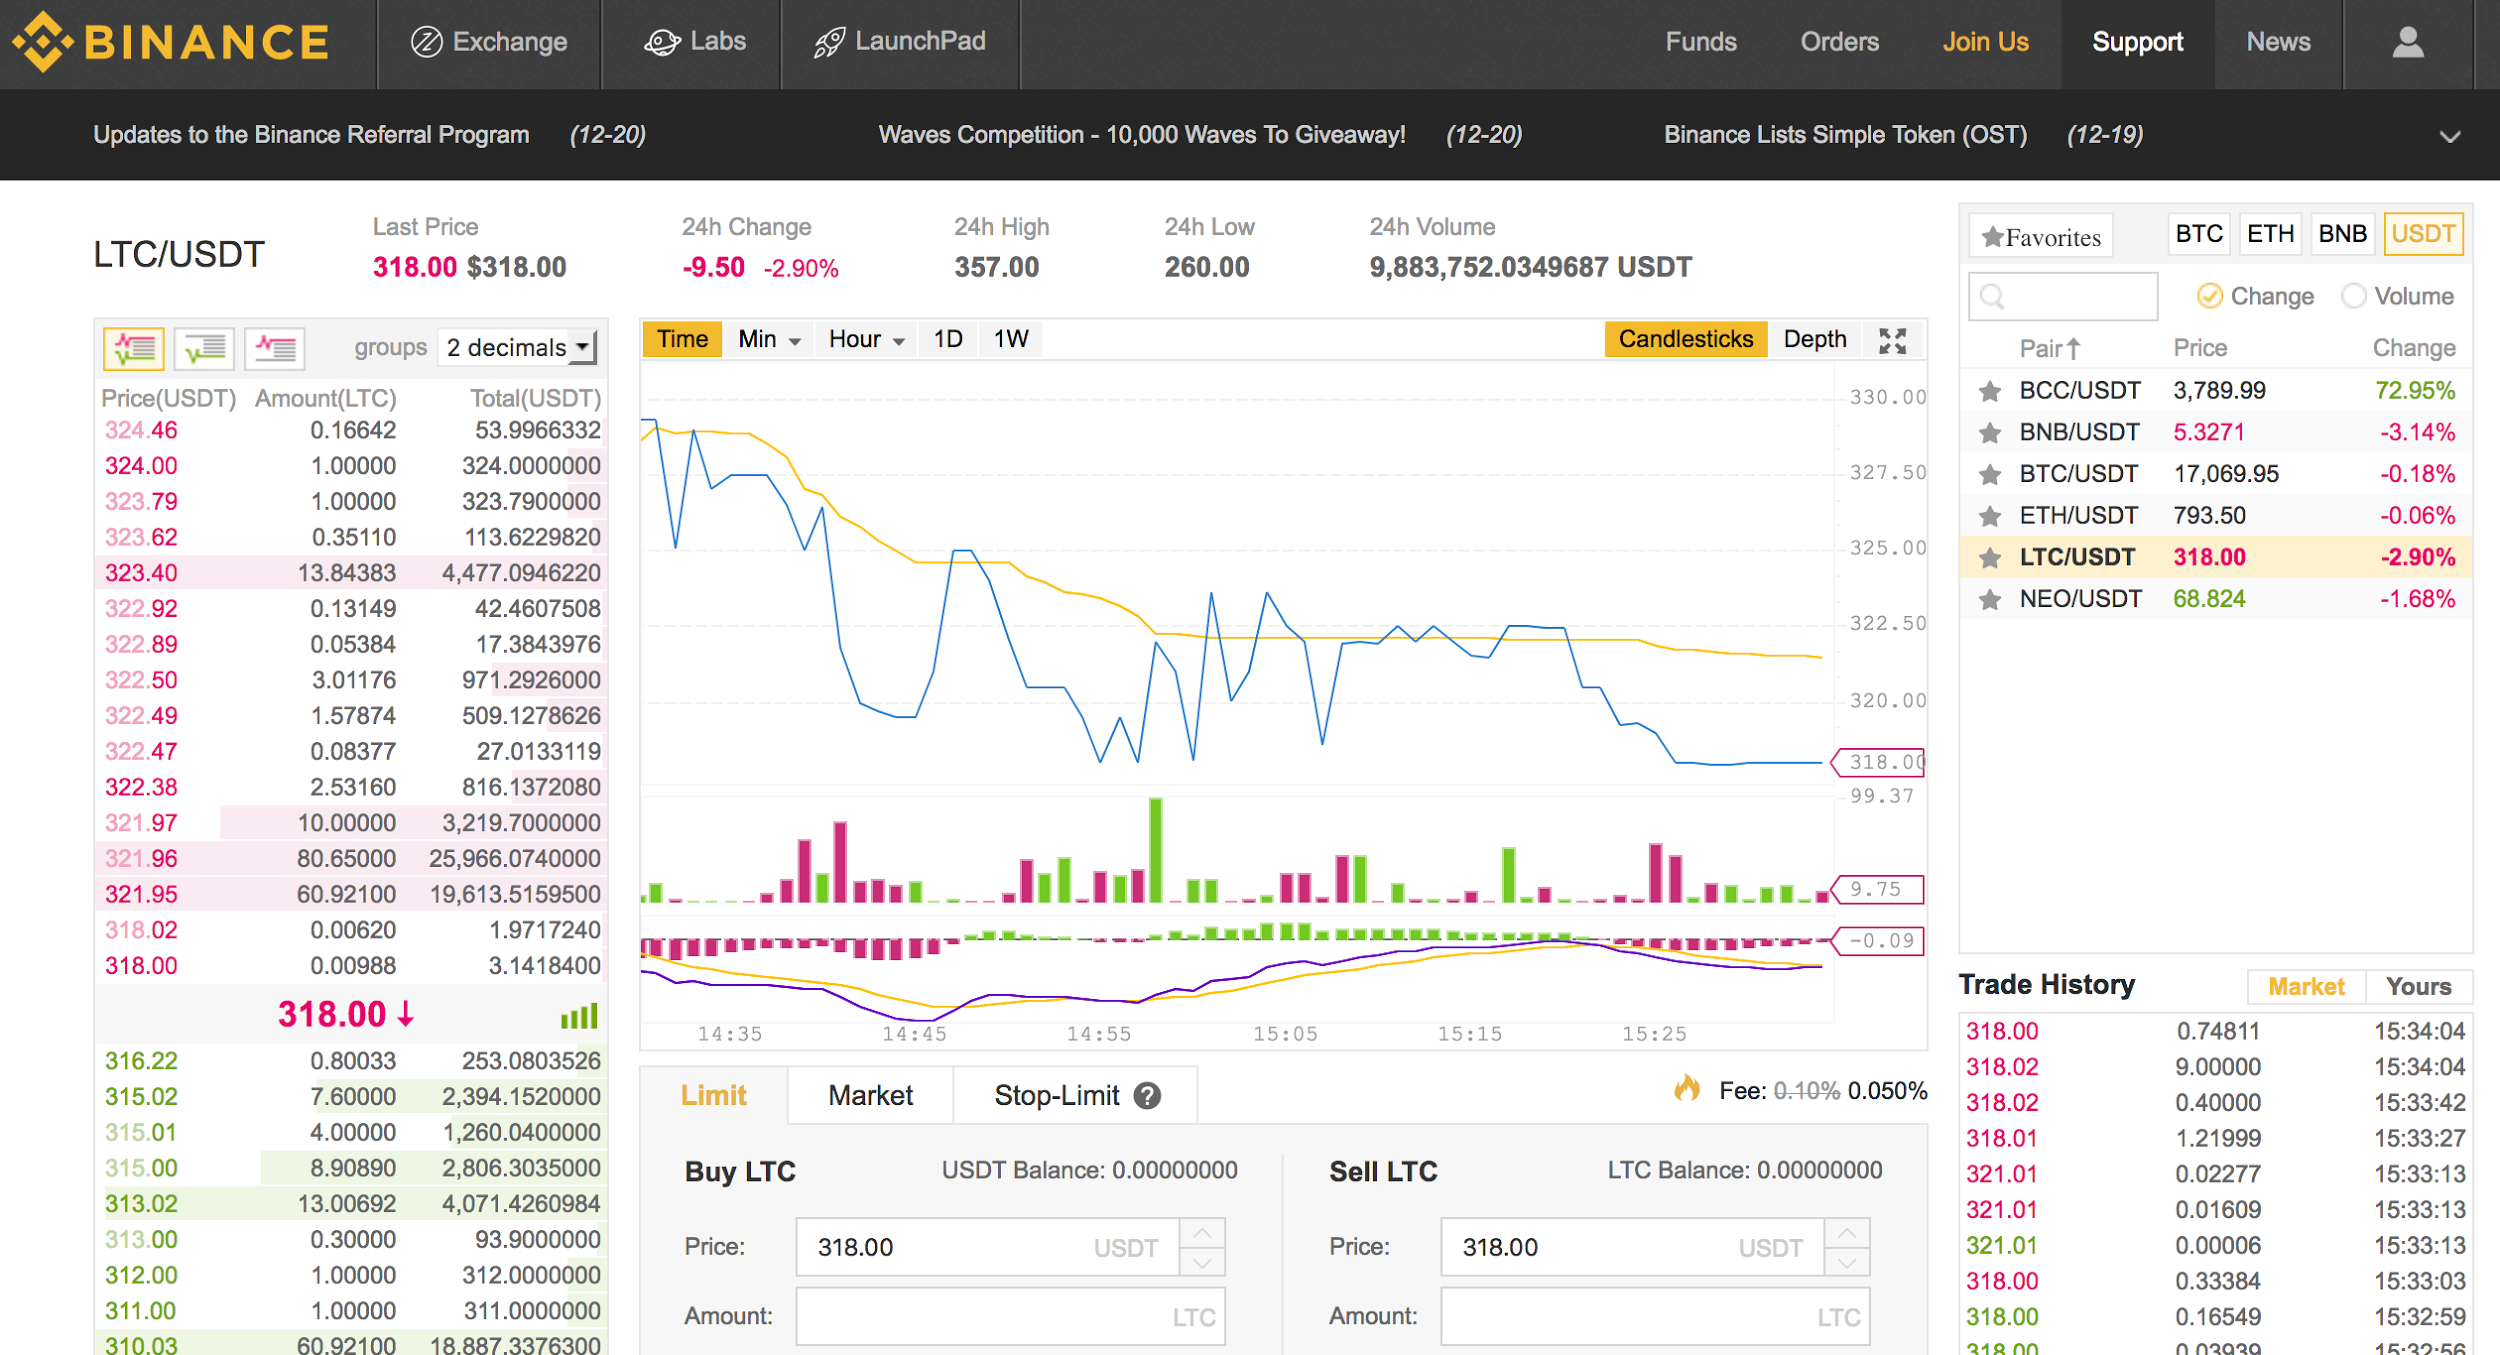 A Screenshot from the Binance User Interface